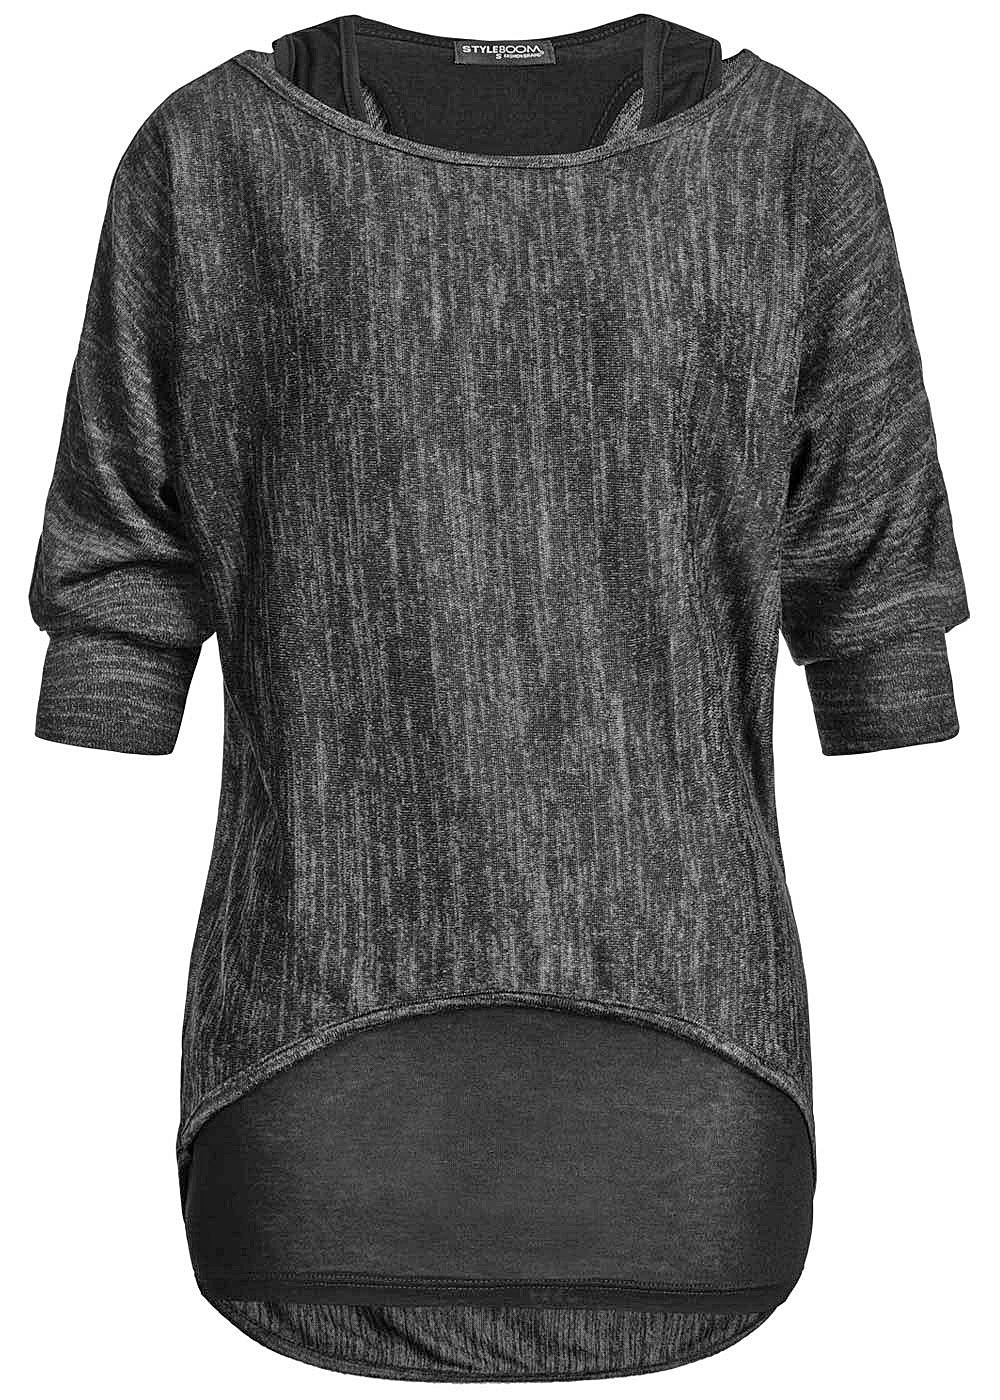 Styleboom Fashion Damen 2in1 Longsleeve Fledermaus Ärmel schwarz - Art.-Nr.: 20086268